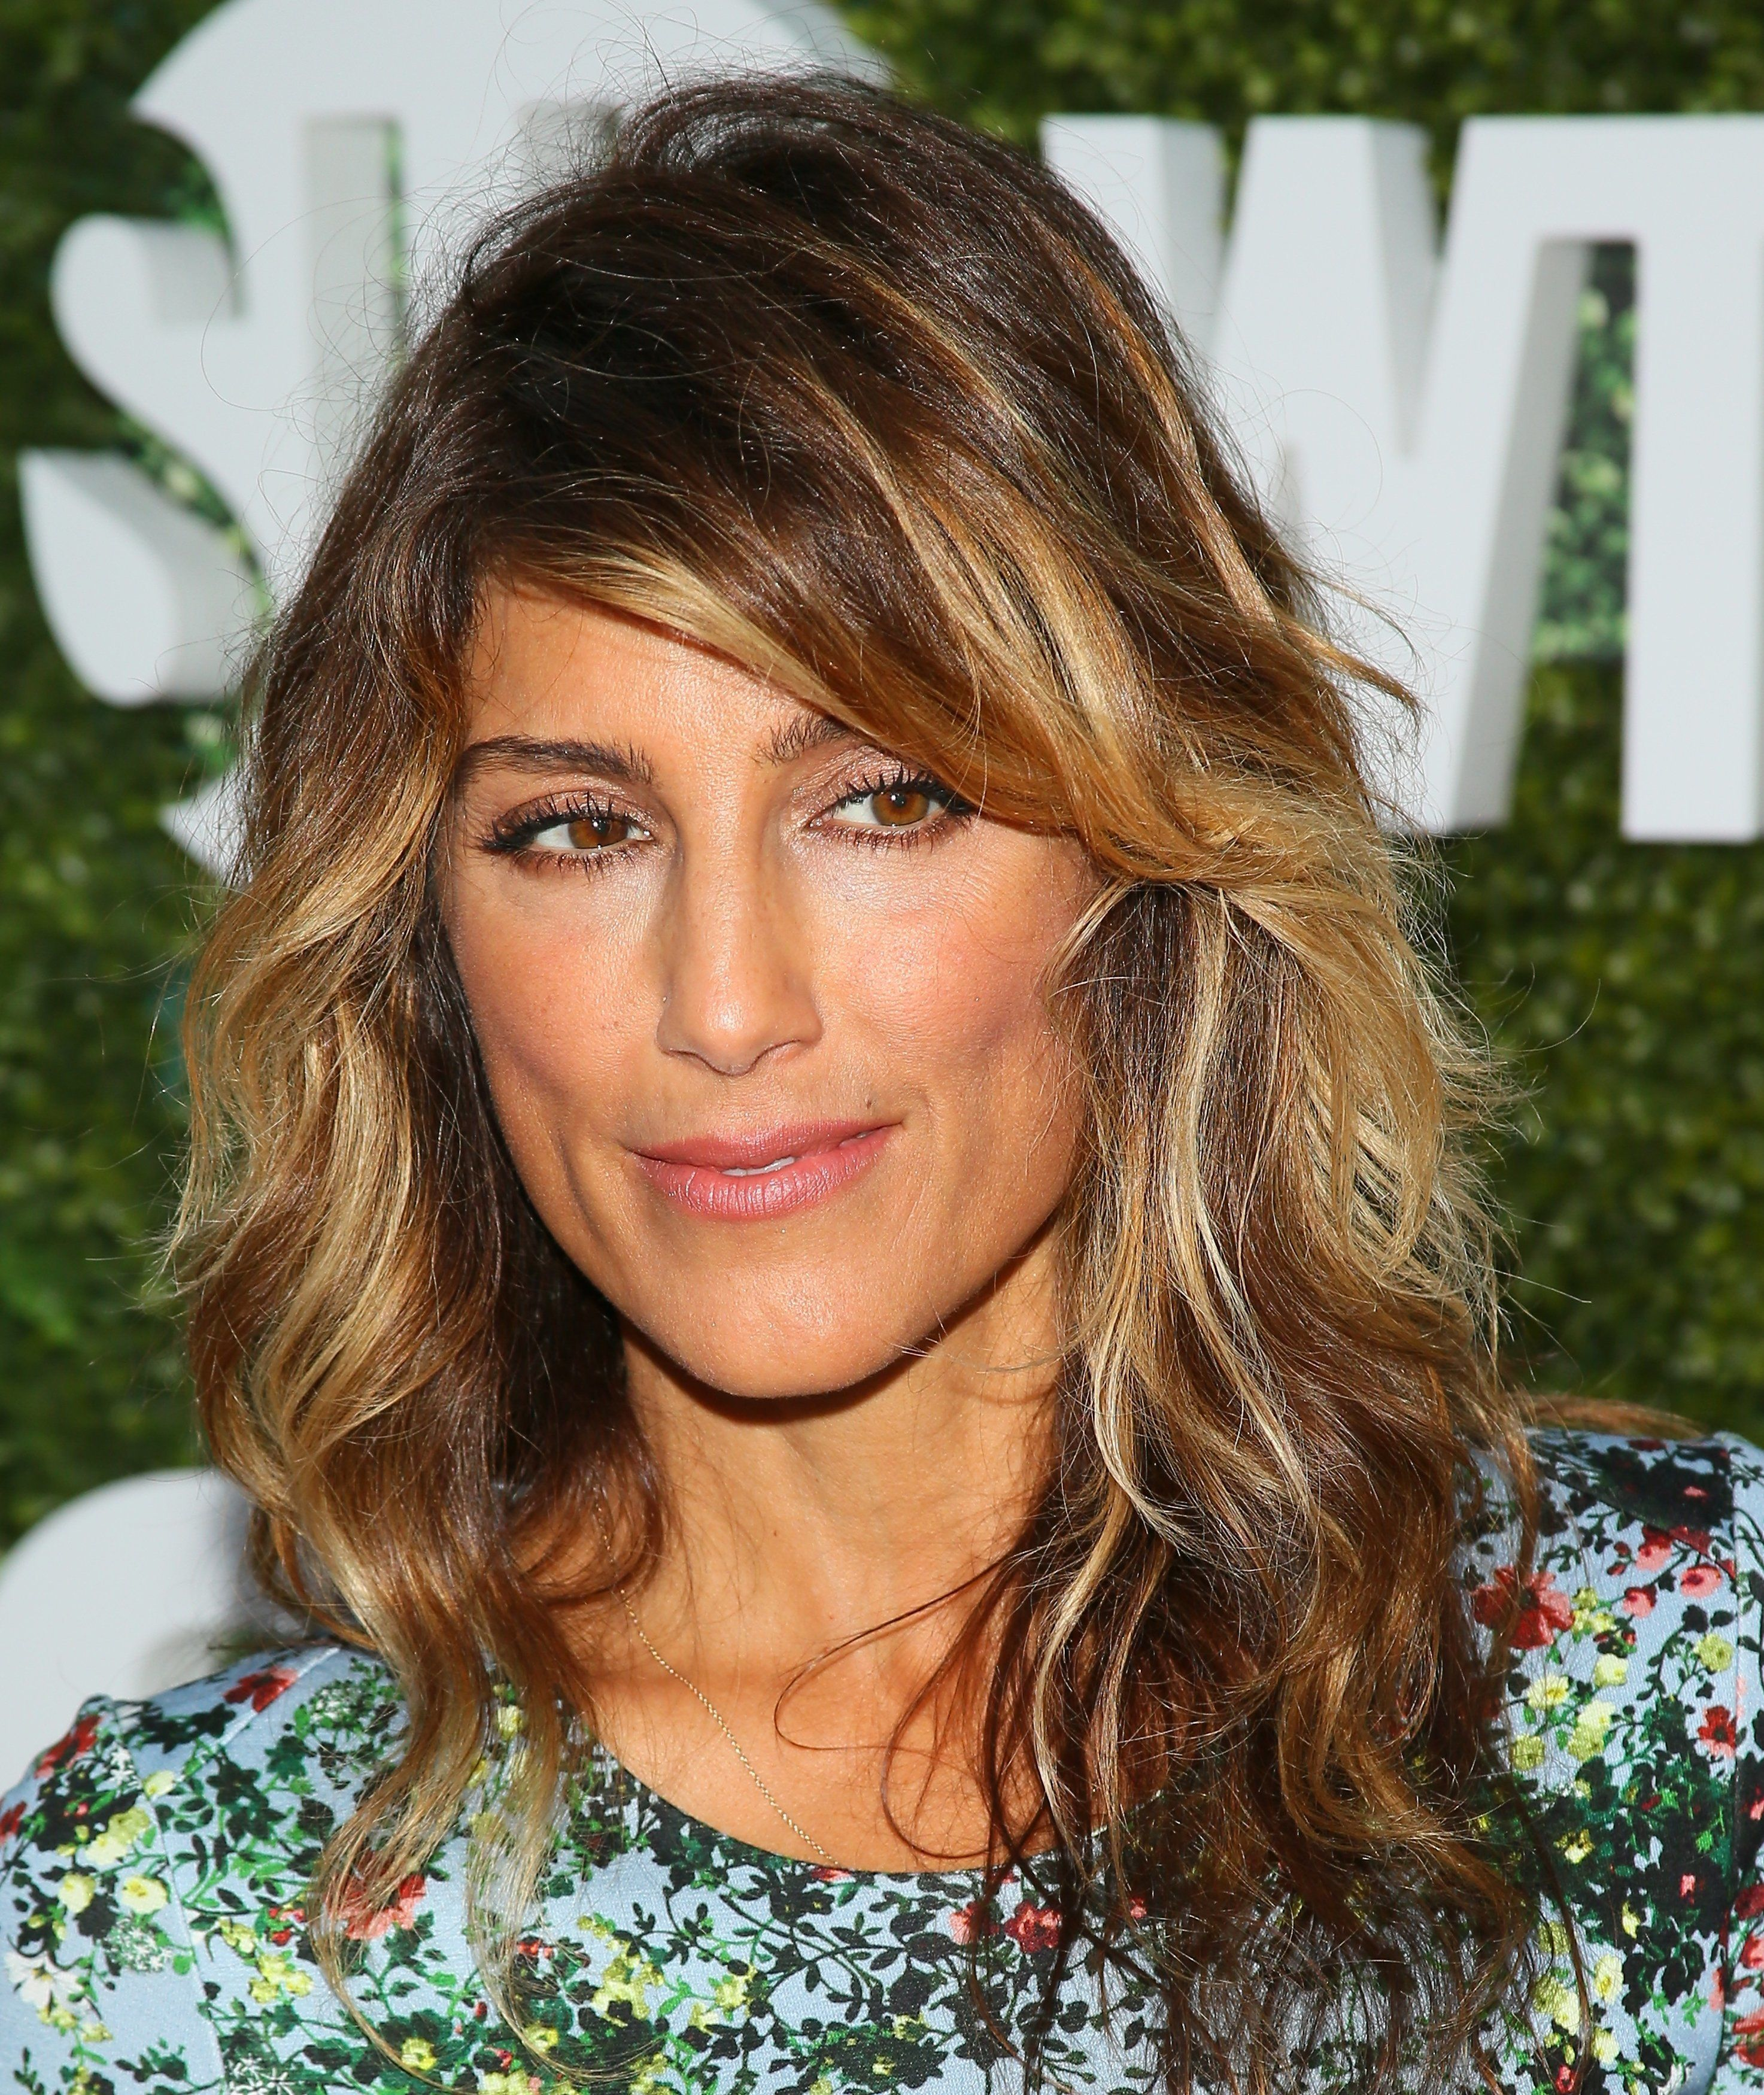 WEST HOLLYWOOD, CA - AUGUST 10: Jennifer Esposito attends the CBS, CW, Showtime Summer TCA Party at Pacific Design Center on August 10, 2016 in West Hollywood, California. (Photo by JB Lacroix/WireImage)